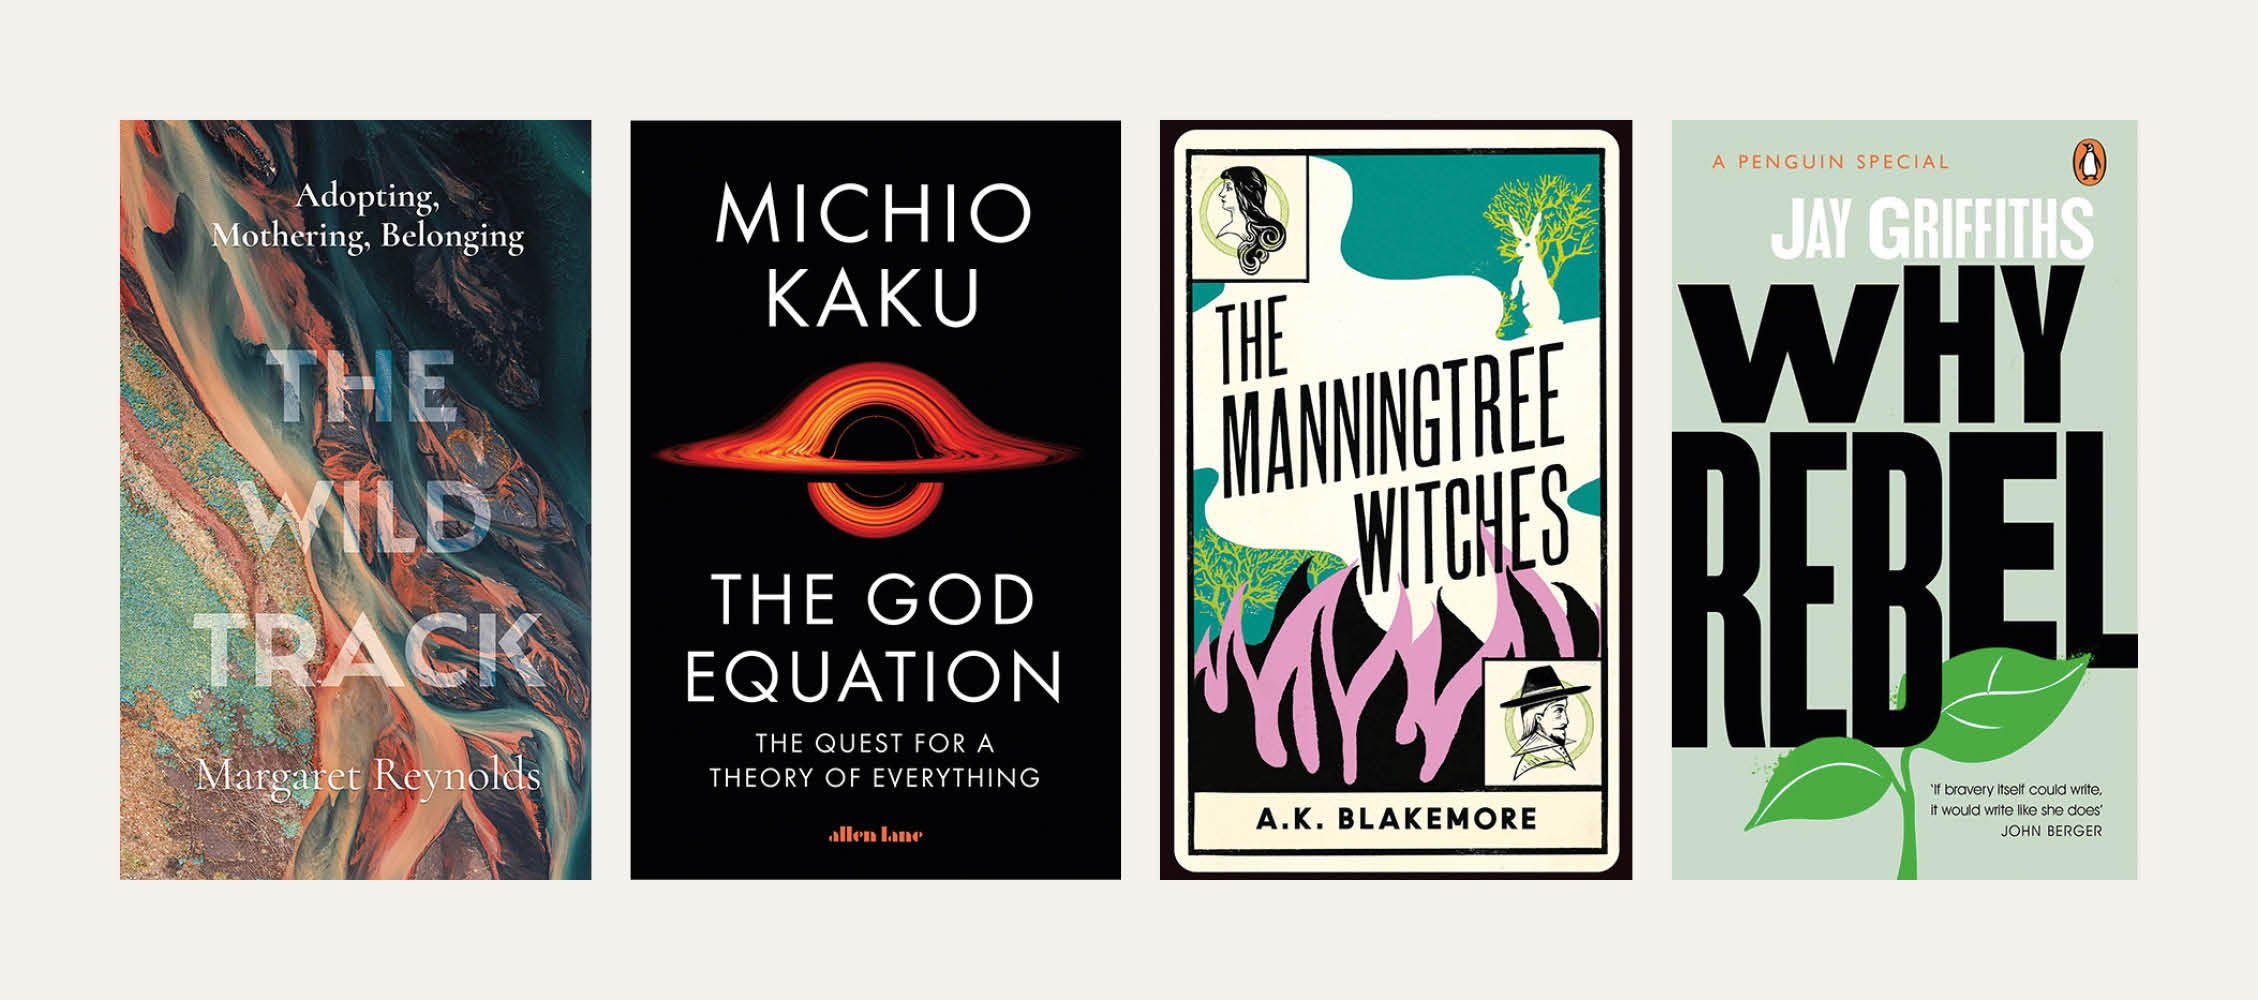 Reviewed in short: New books by Margaret Reynolds, Michio Kaku, AK Blakemore and Jay Griffiths